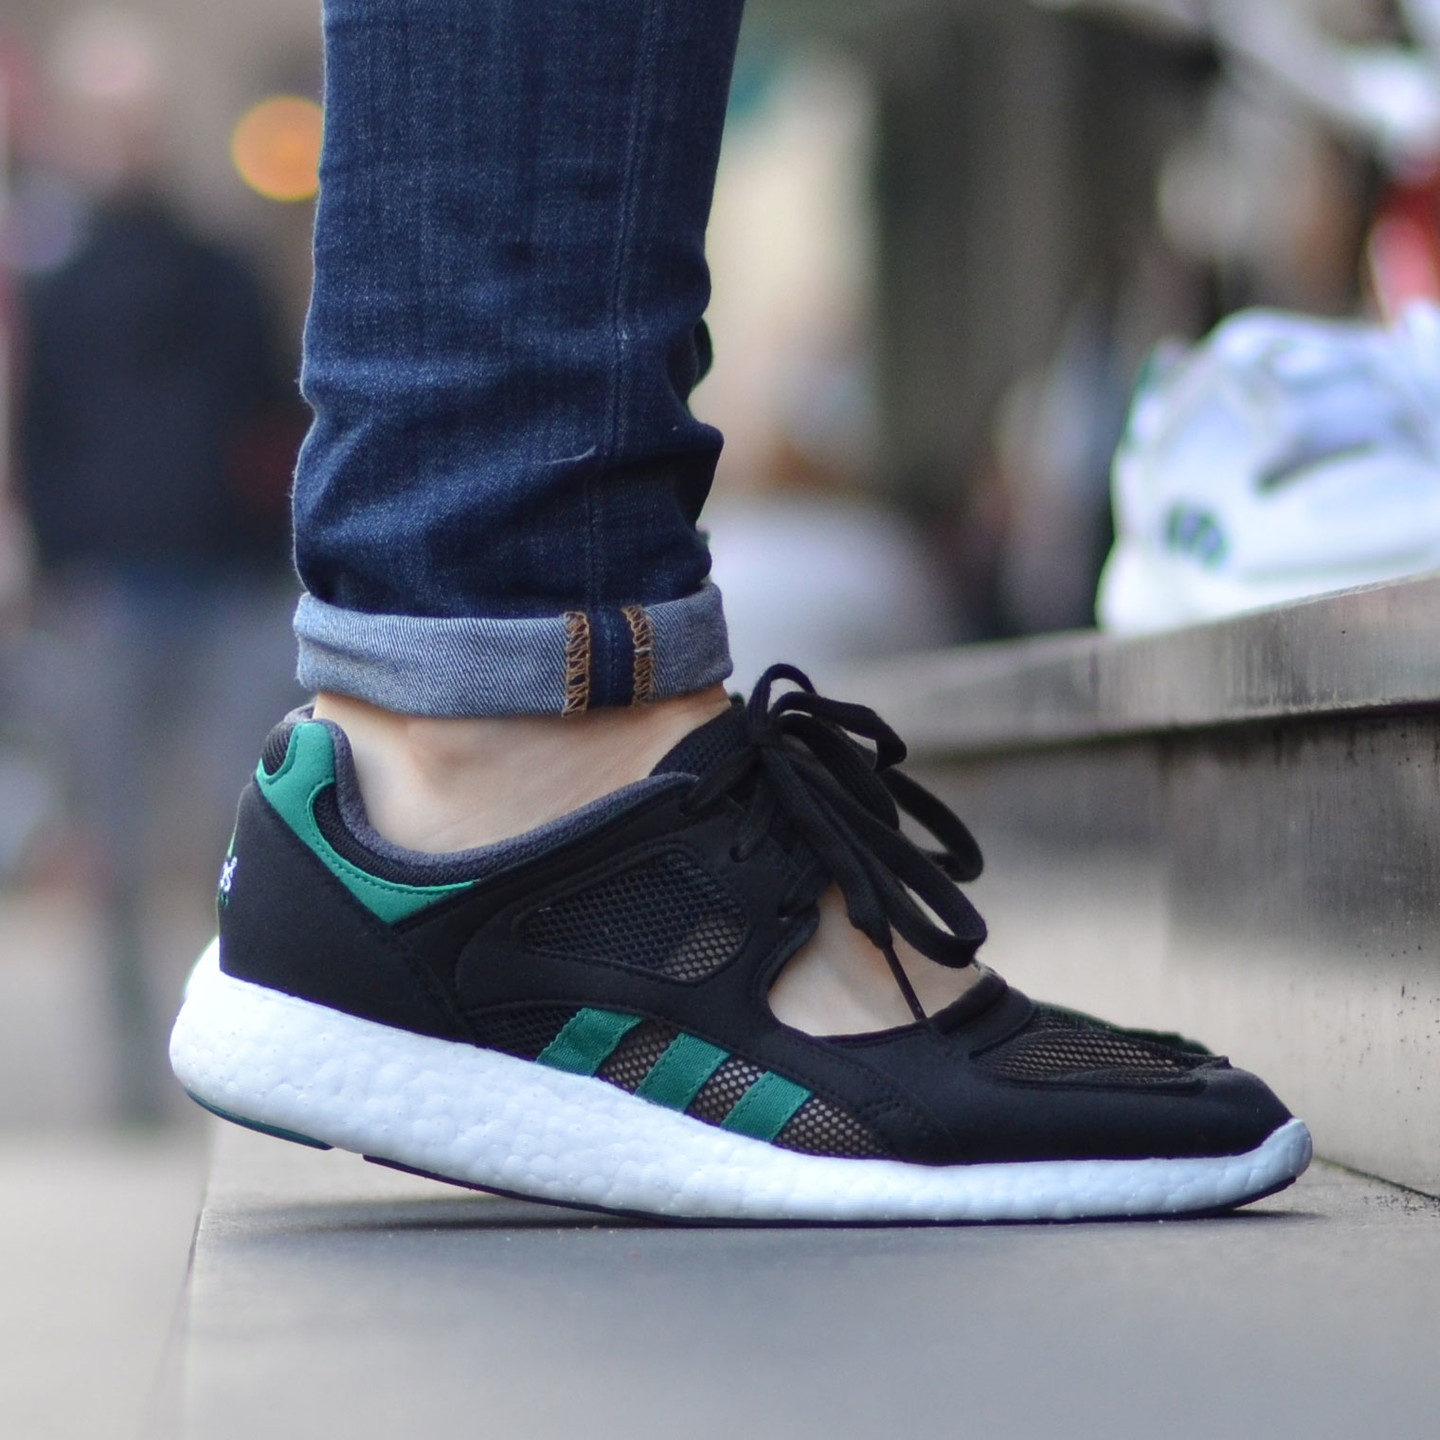 Adidas Equipment Racing 91/16 EQT Boost W Core Black / Sub Green S75584-38